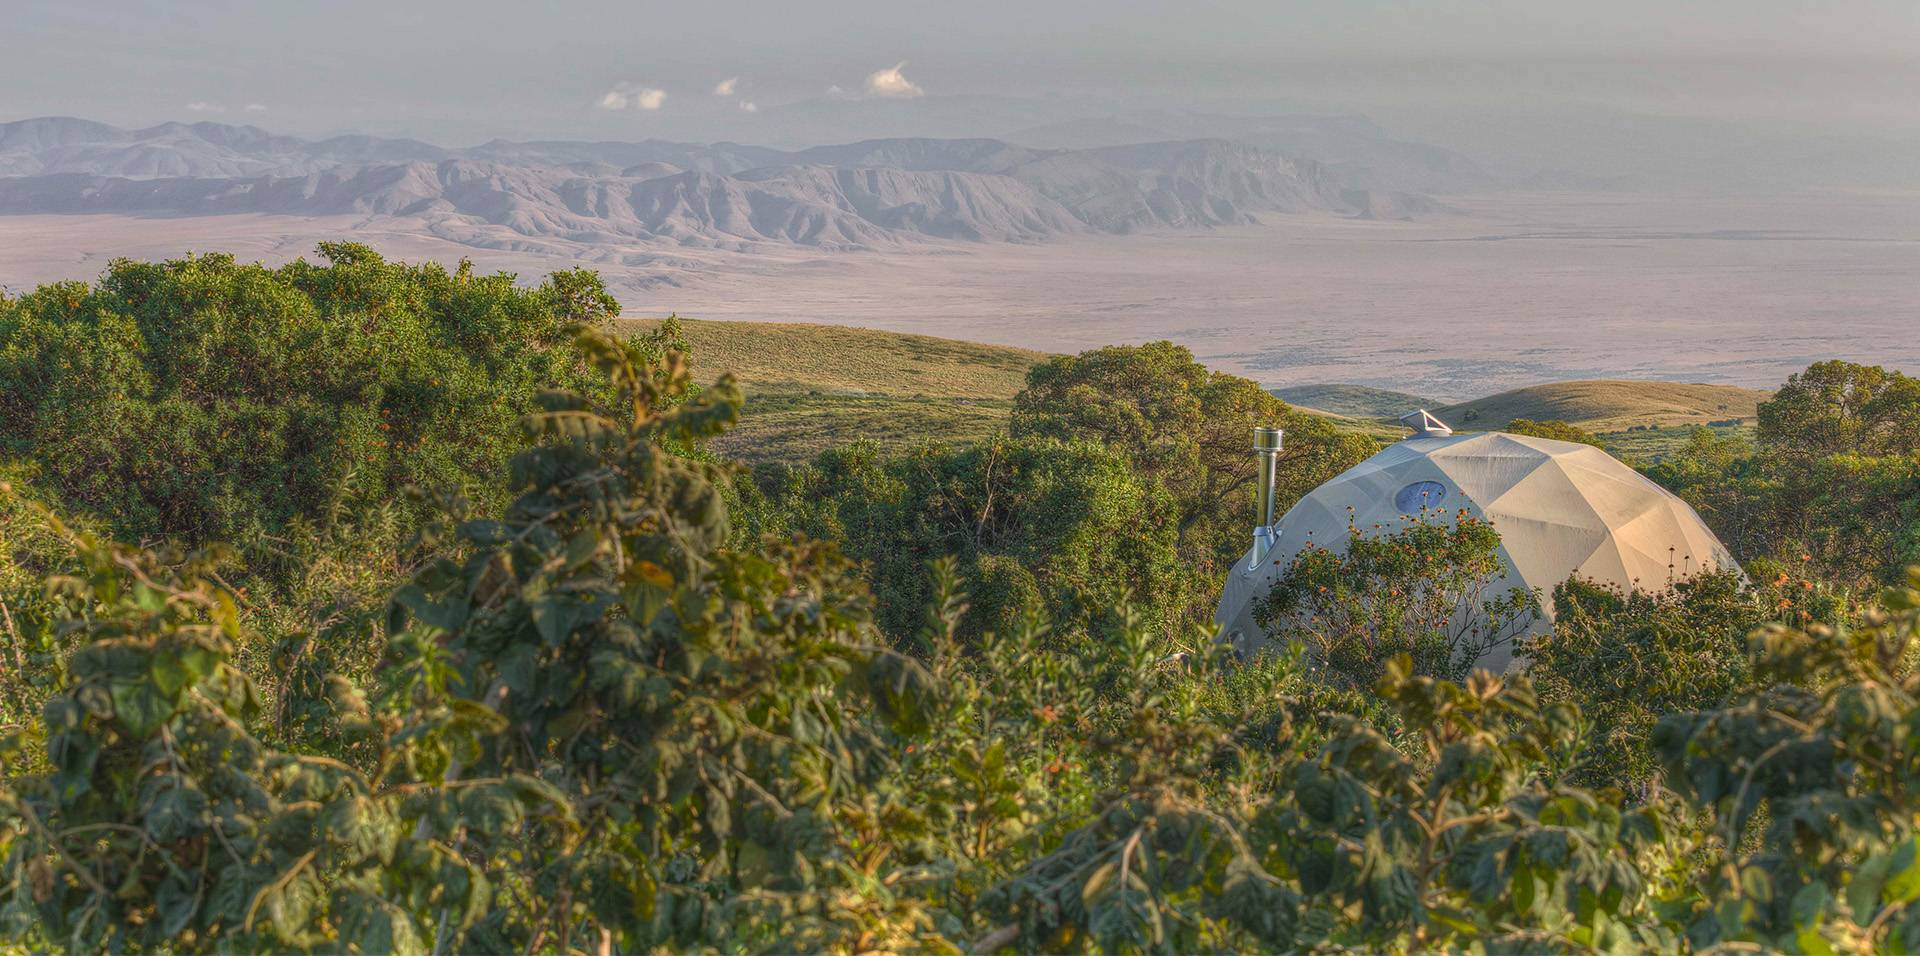 Ngorongoro Crater Tanzania - The Highlands